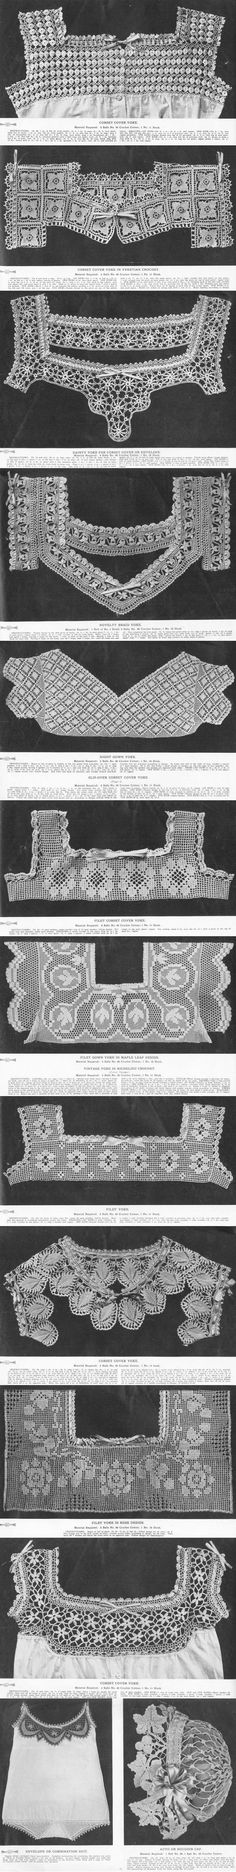 Beginner Crochet Instructions of yesteryear. The Princess Yoke Book contains engravings and instructions on making these beautiful yokes. Read it on the DIY Collaboratorium's Crochet Library page. Col Crochet, Cardigan Au Crochet, Crochet Collar, Crochet Blouse, Filet Crochet, Irish Crochet, Crochet Motif, Crochet Designs, Crochet Stitches